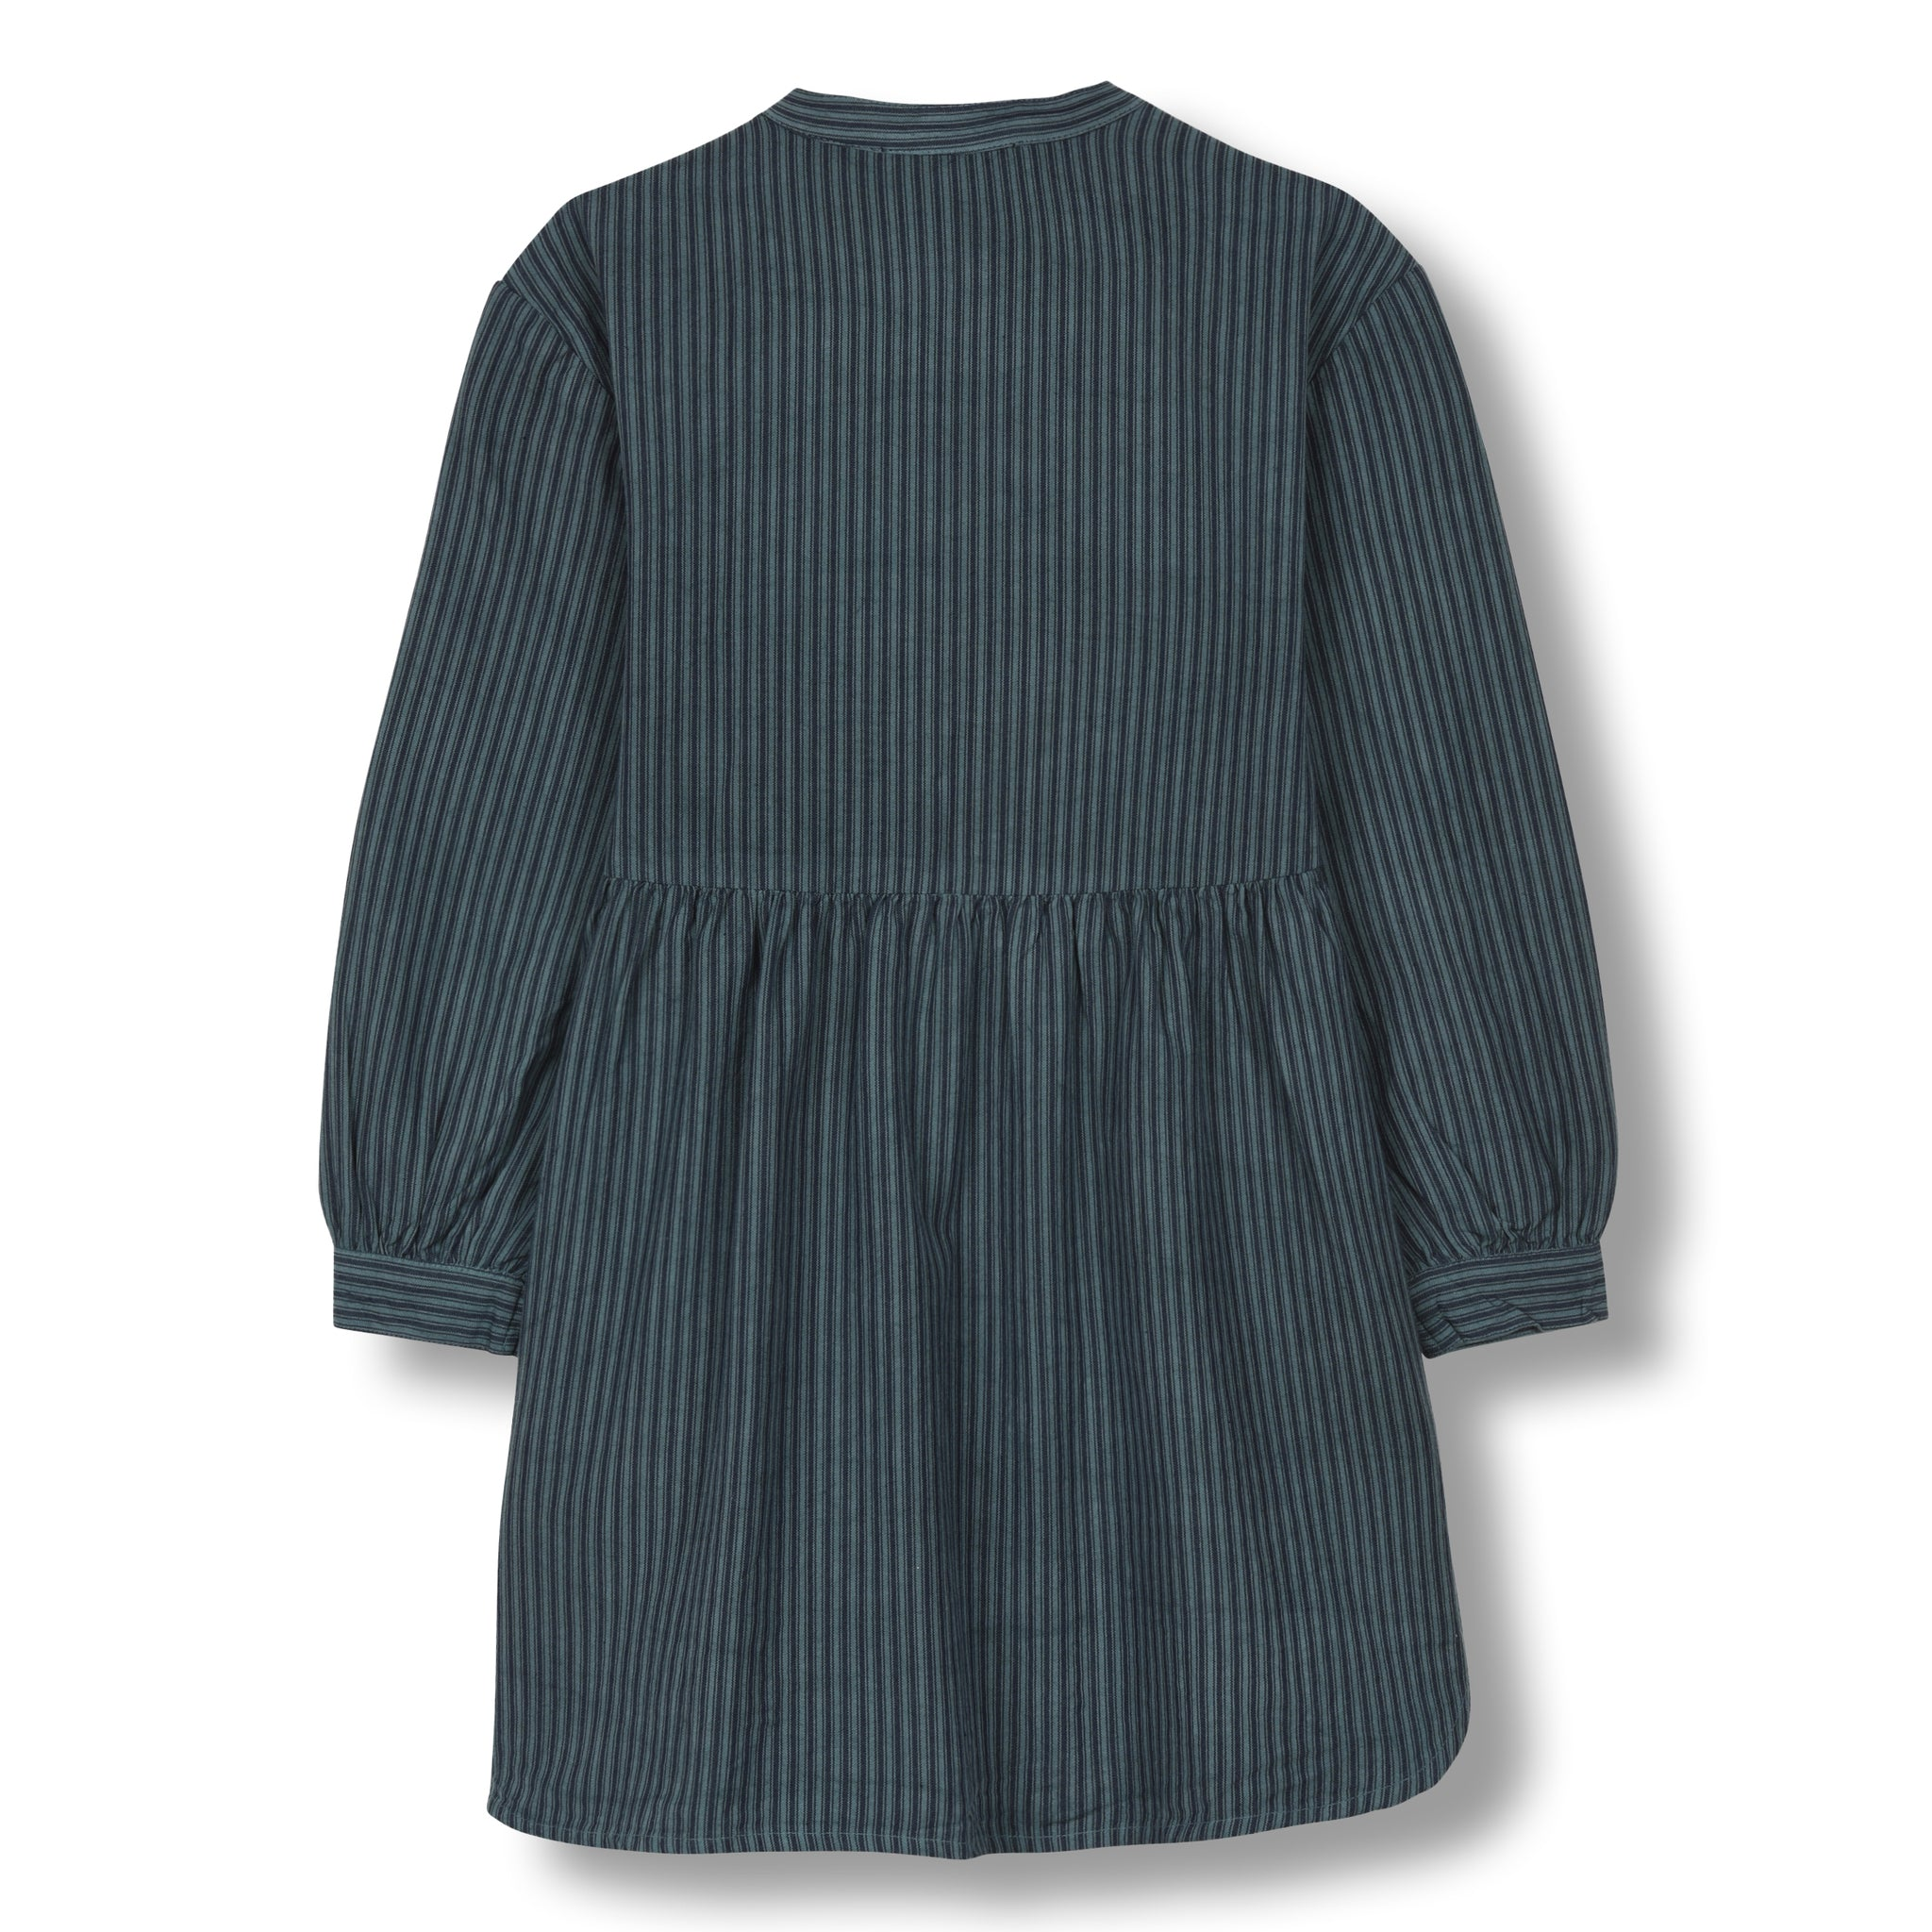 SWAY Dark Blue Stripes - Long Sleeves Dress 2